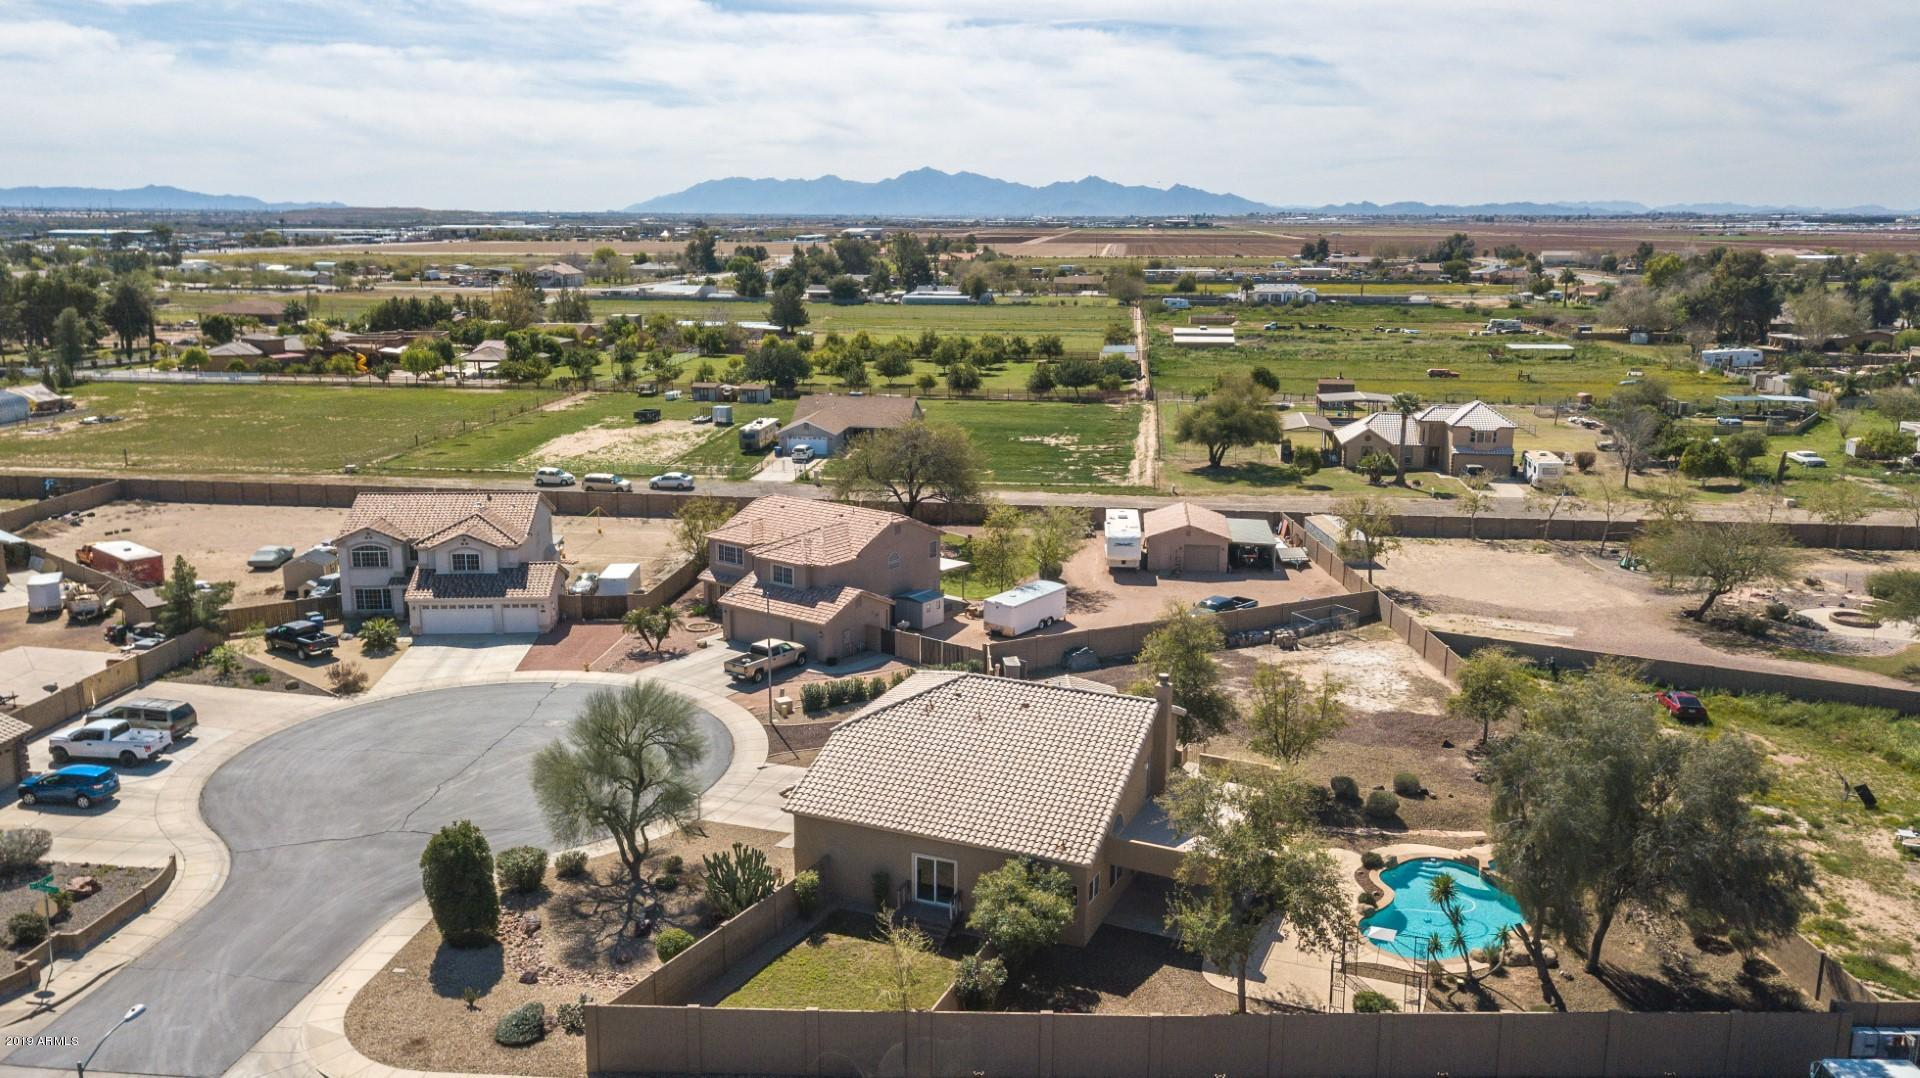 MLS 5897252 11406 N 126TH Drive, El Mirage, AZ 85335 El Mirage AZ Private Pool